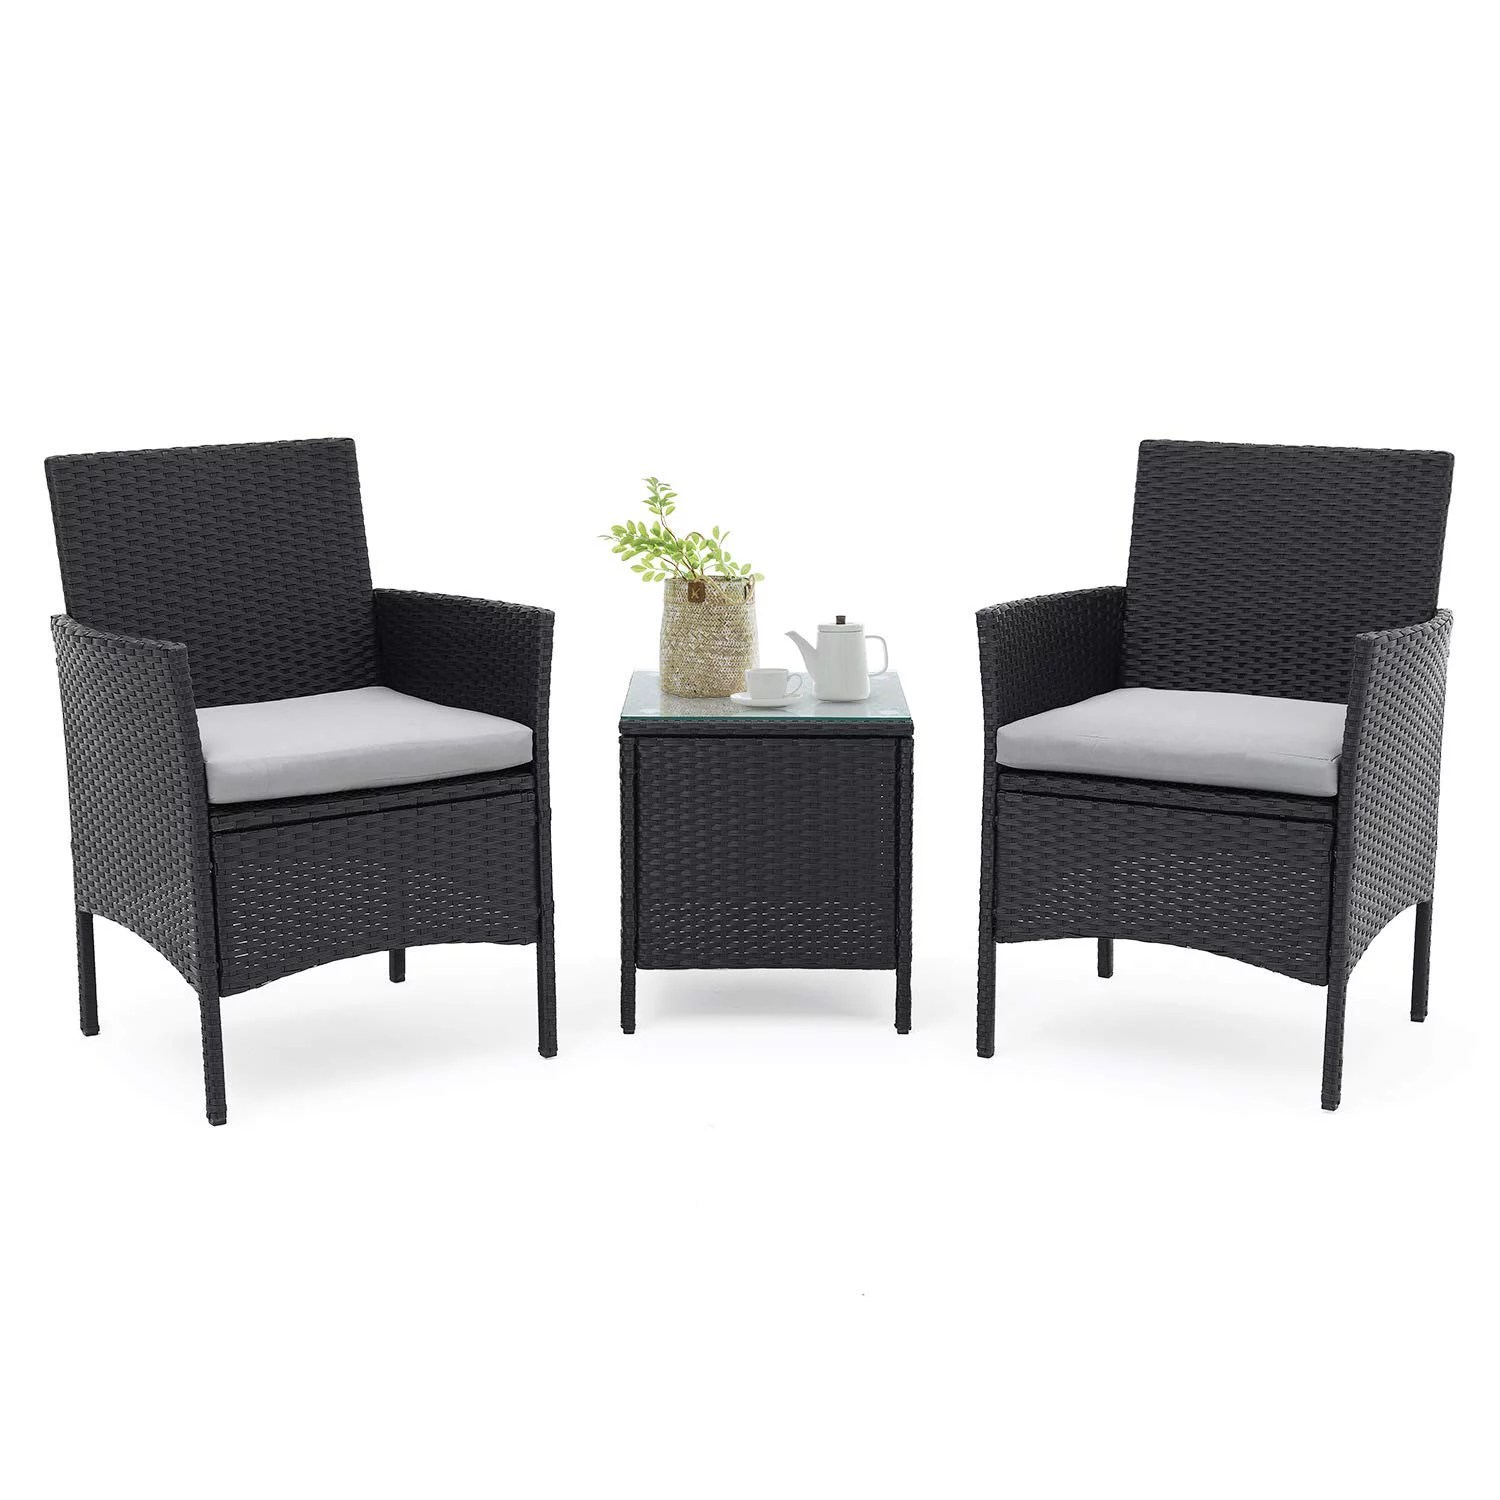 suncrown 3 piece patio furniture outdoor bistro set 2 wicker chairs with glass top table all weather black wicker and thick cushions garden backyard